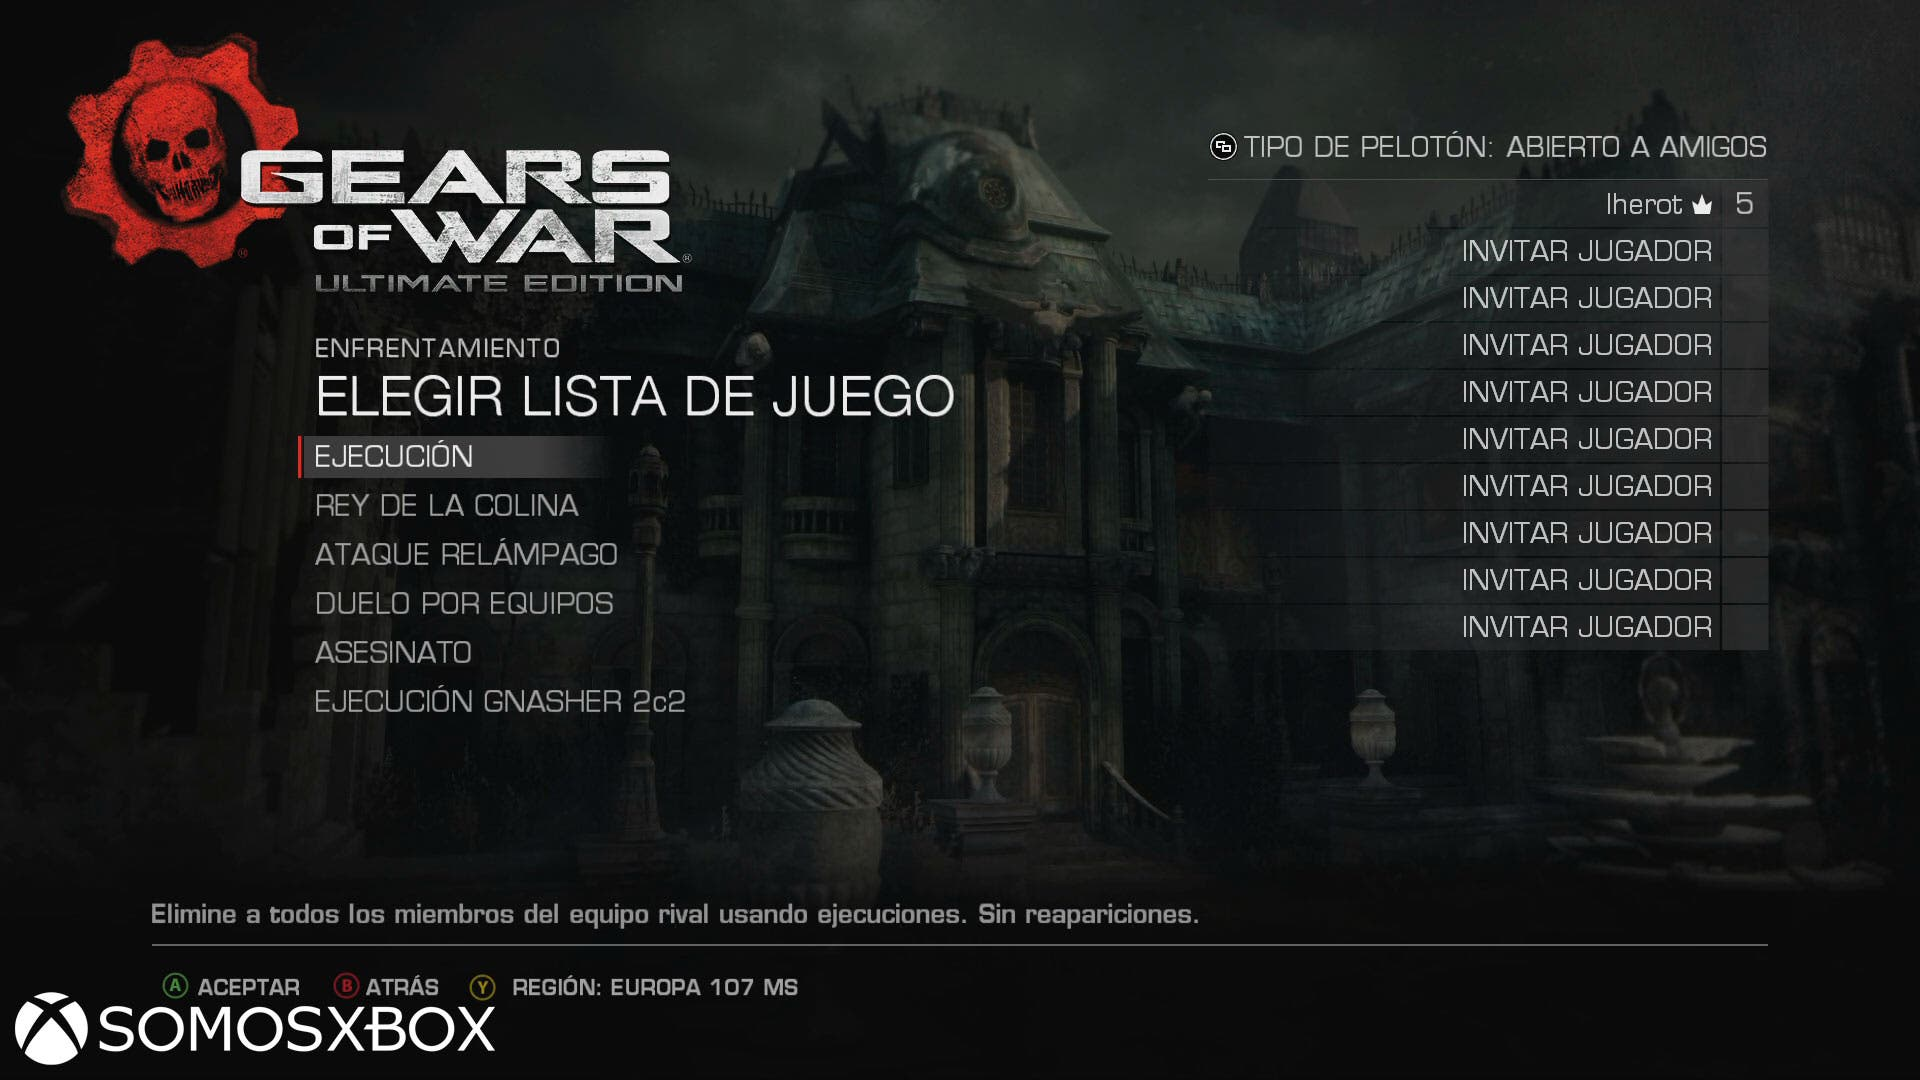 gearsofwar-ultimateedition (16)